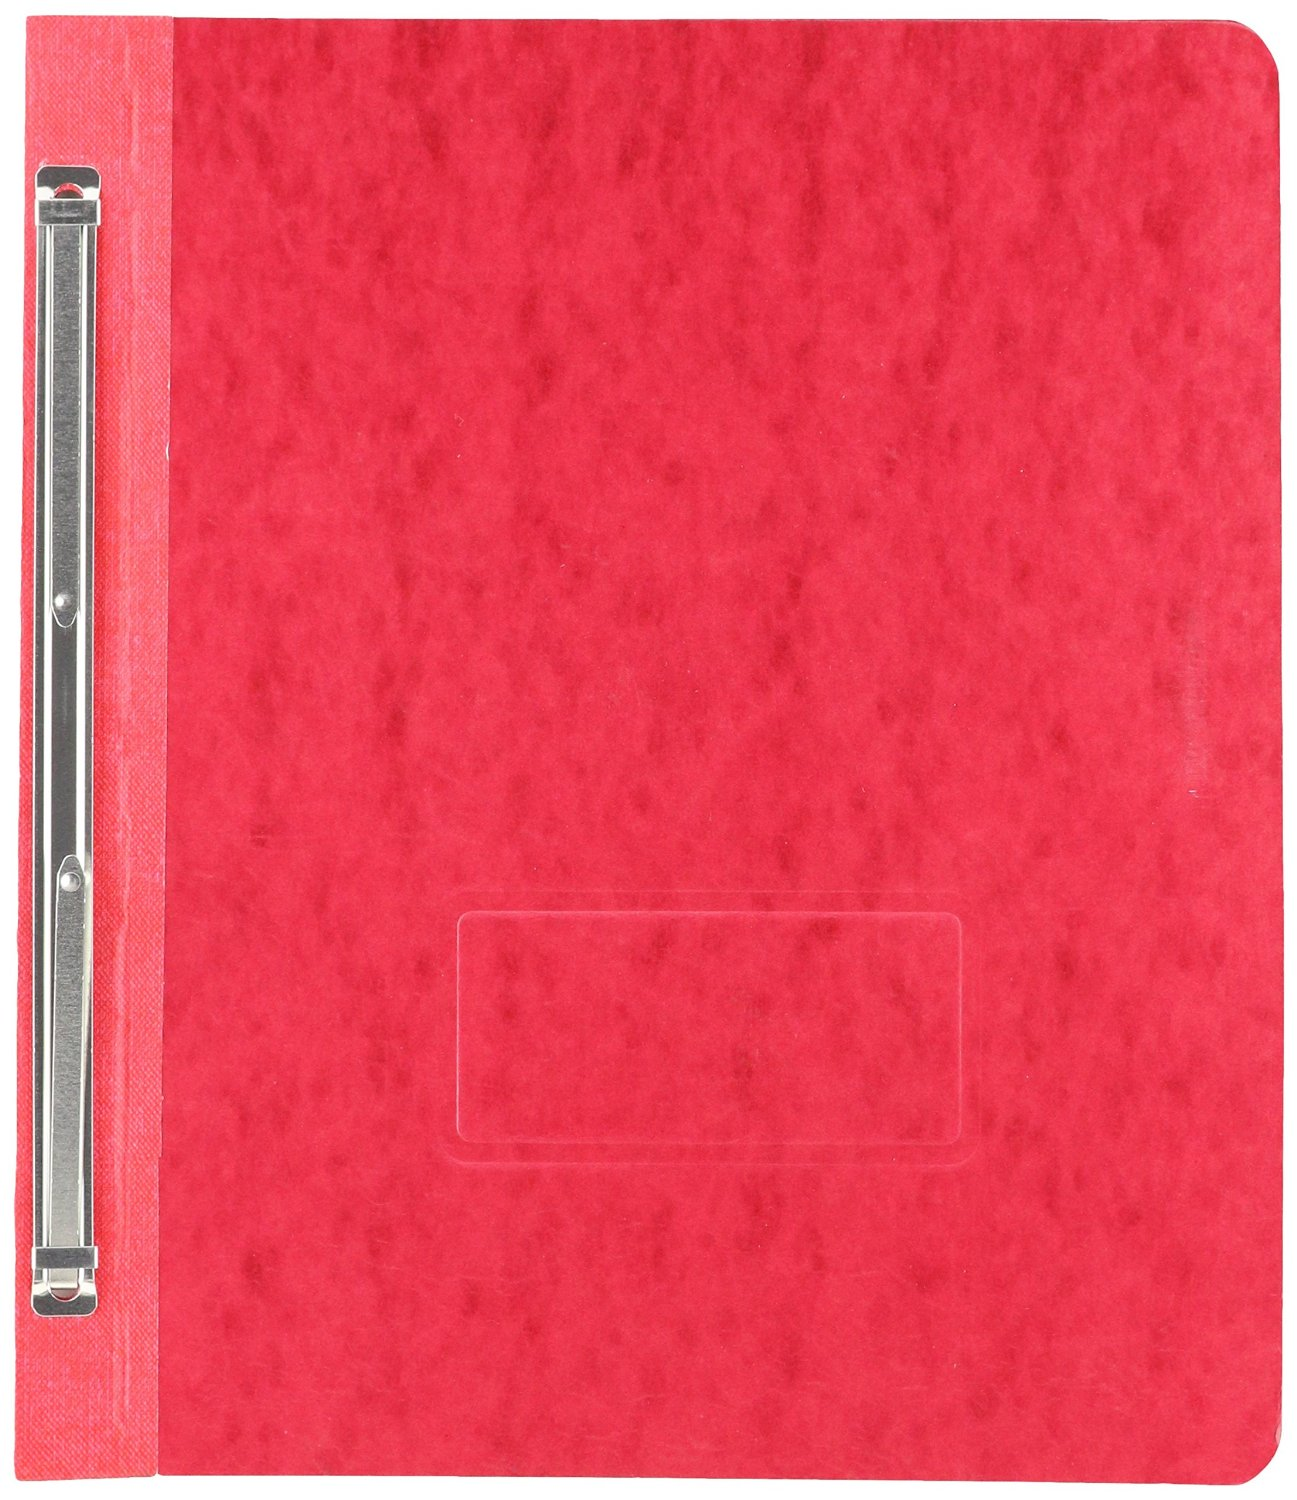 Oxford PressGuard Report Covers with Reinforced Side Hinge, 11-Inch x 8-1/2-Inch, Executive Red (12711)